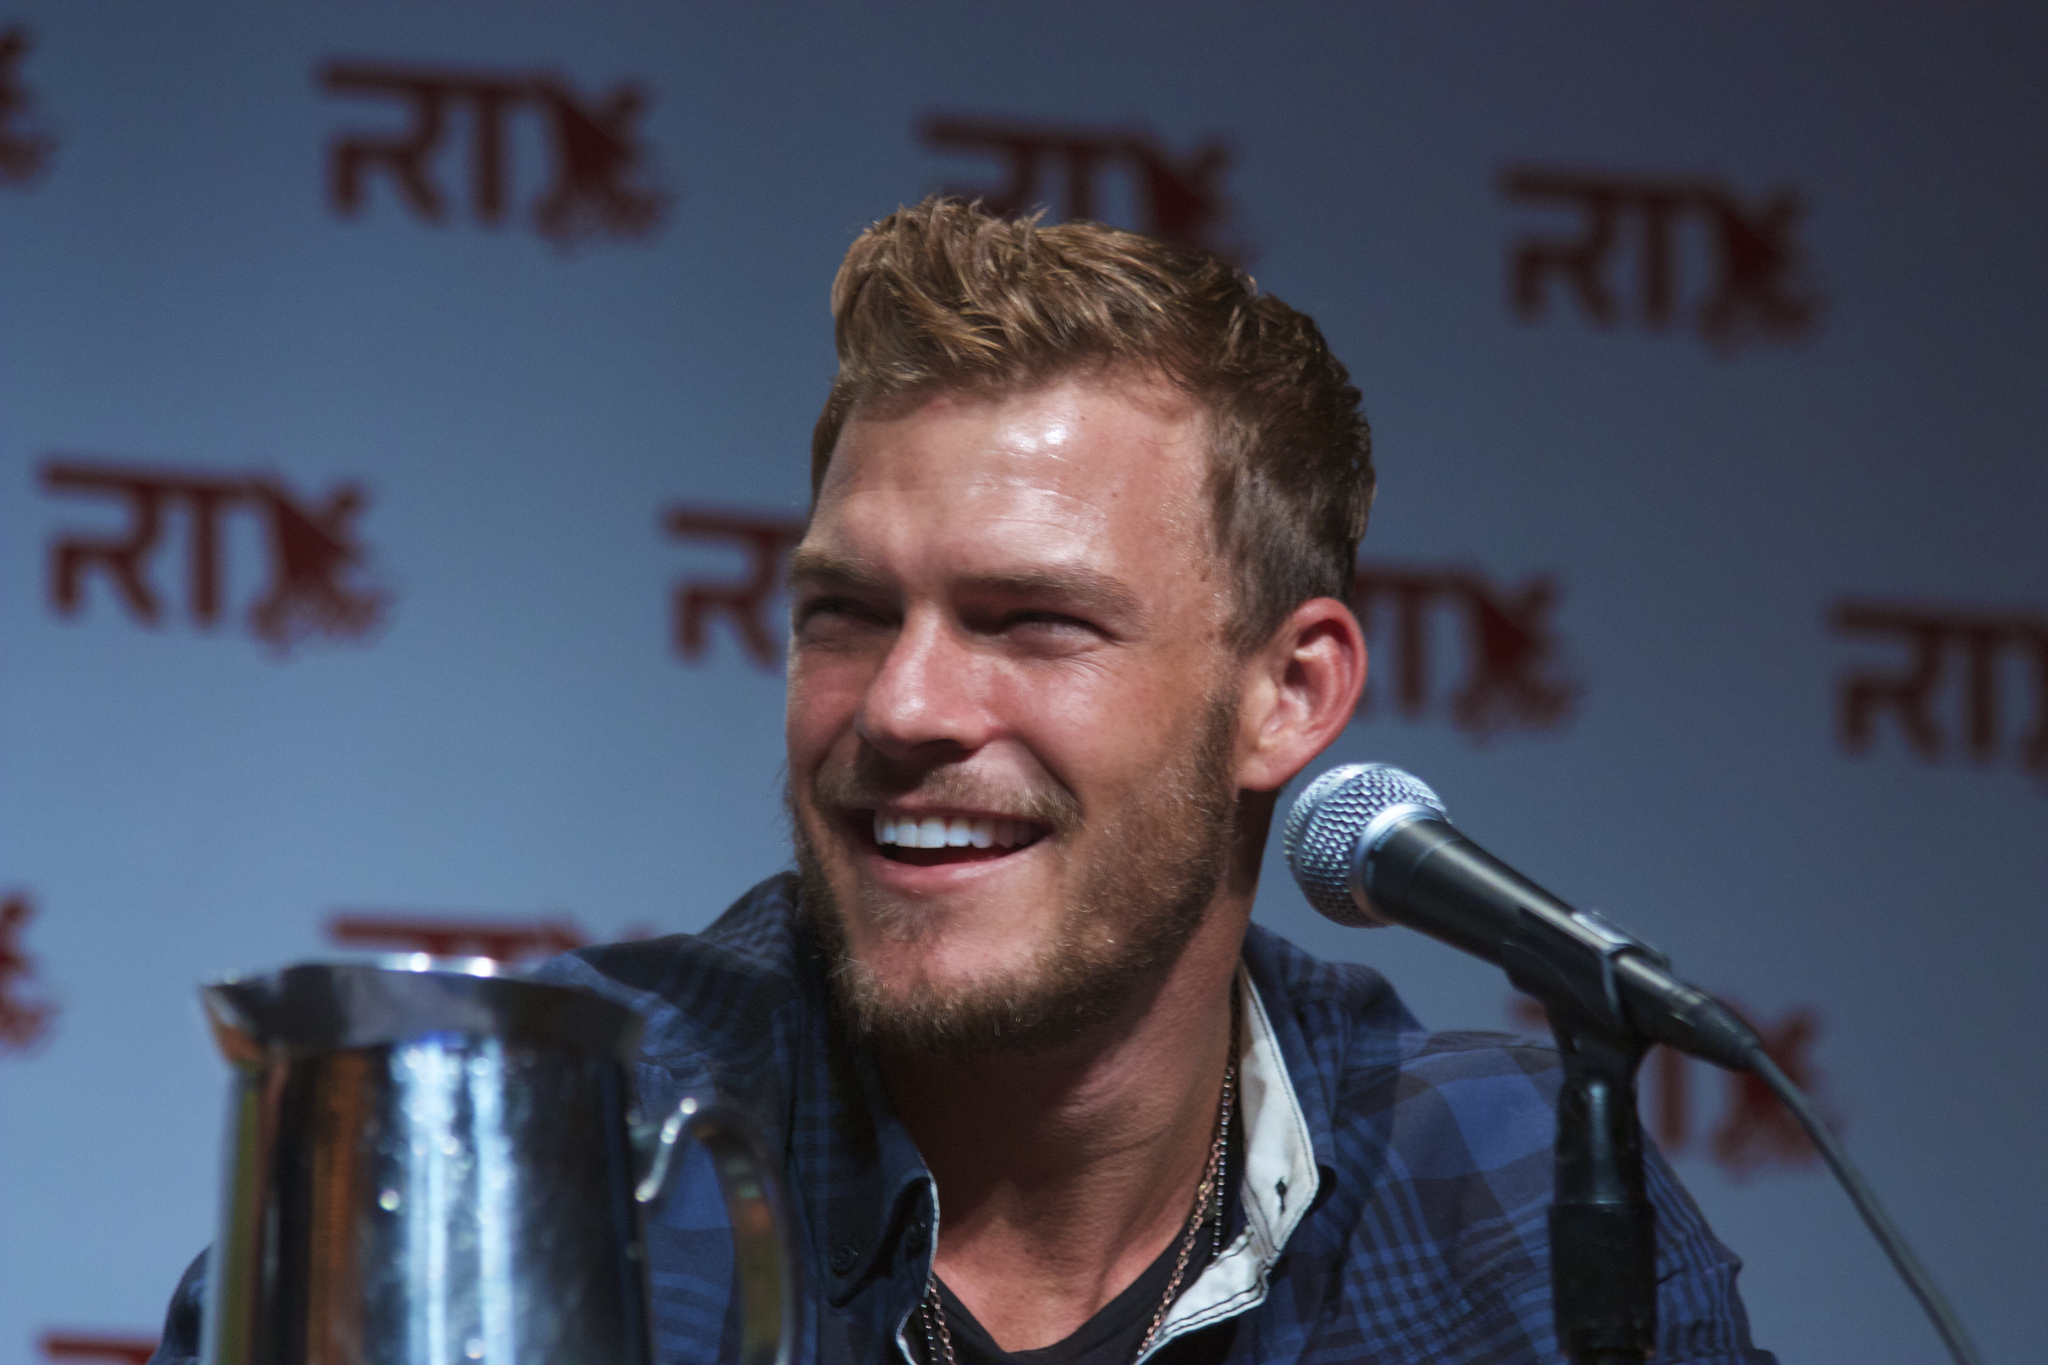 Alan Ritchson cast in DC's live-action Titans series